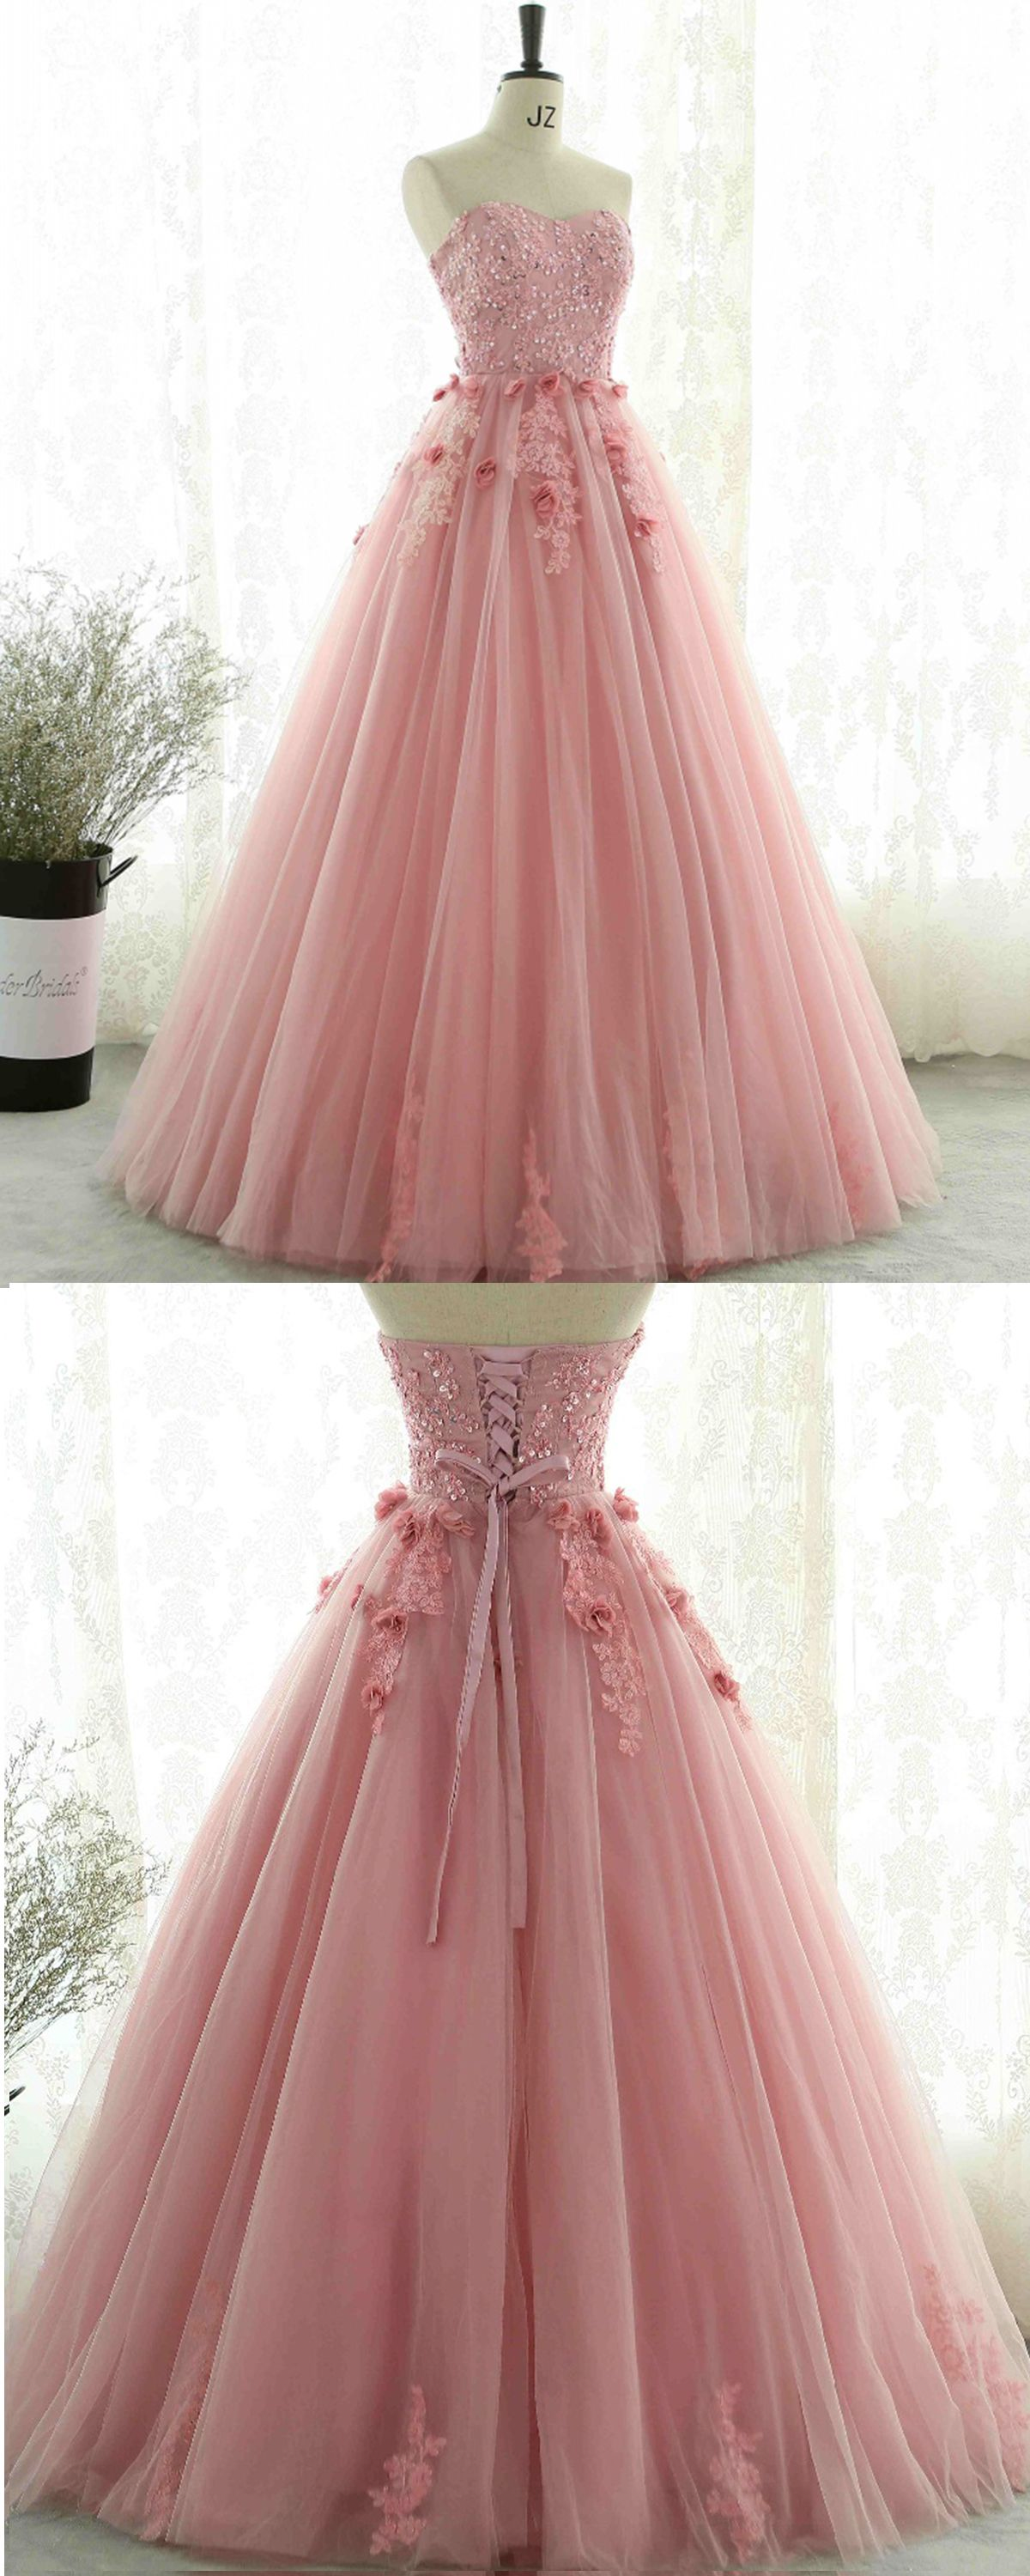 Beaded pink tulle long sweet 16 prom dress | Festa de 15 | Pinterest ...